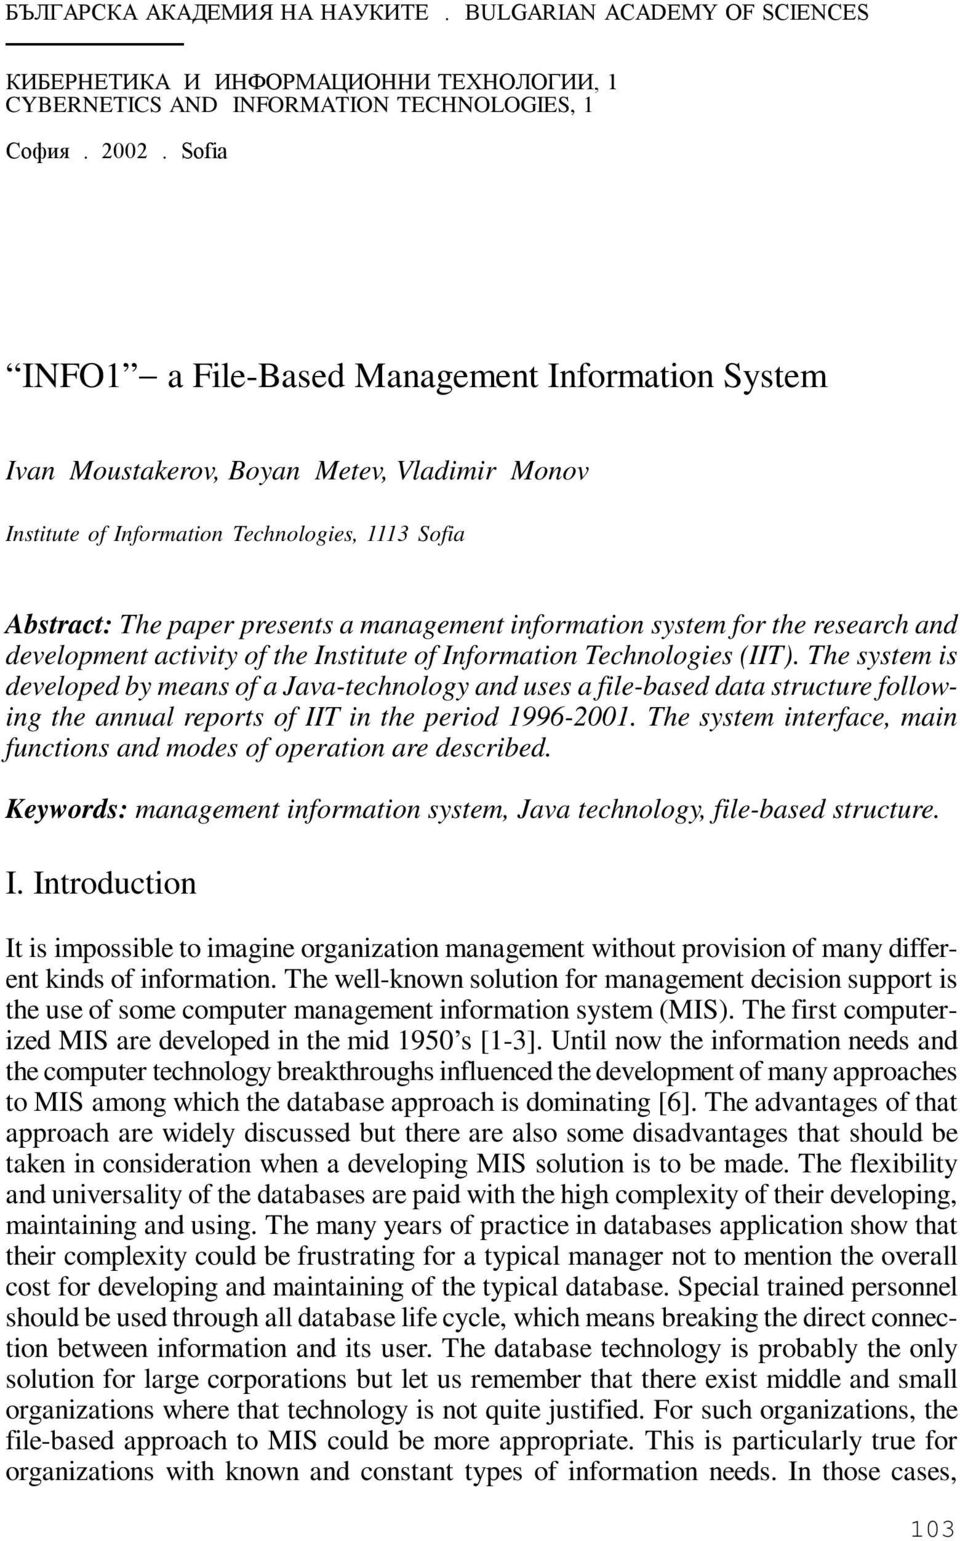 information system for the research and development activity of the Institute of Information Technologies (IIT).